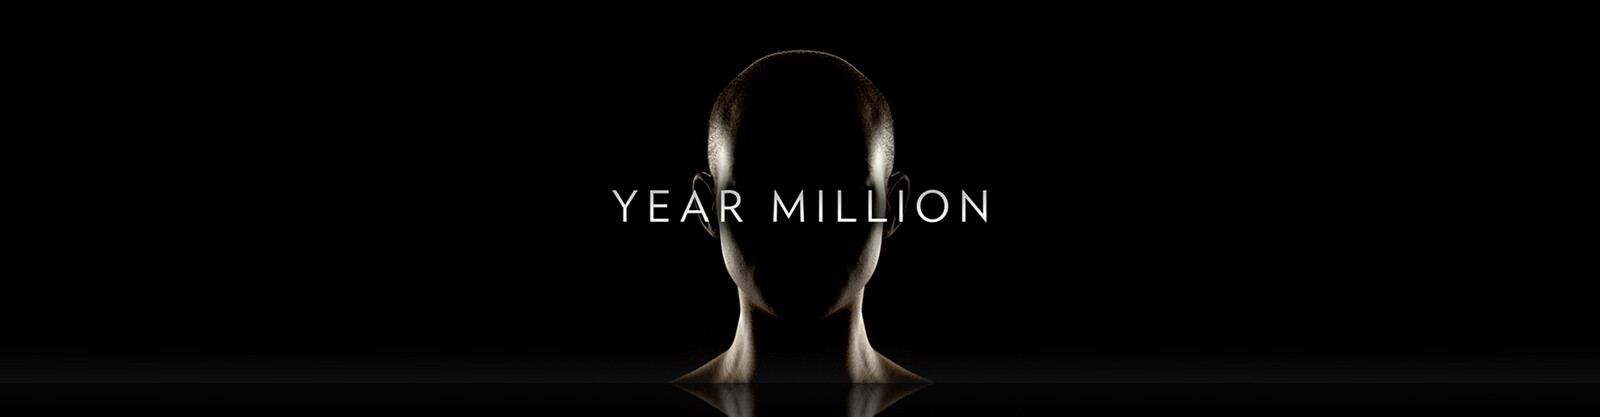 Nat Geo's Year Million